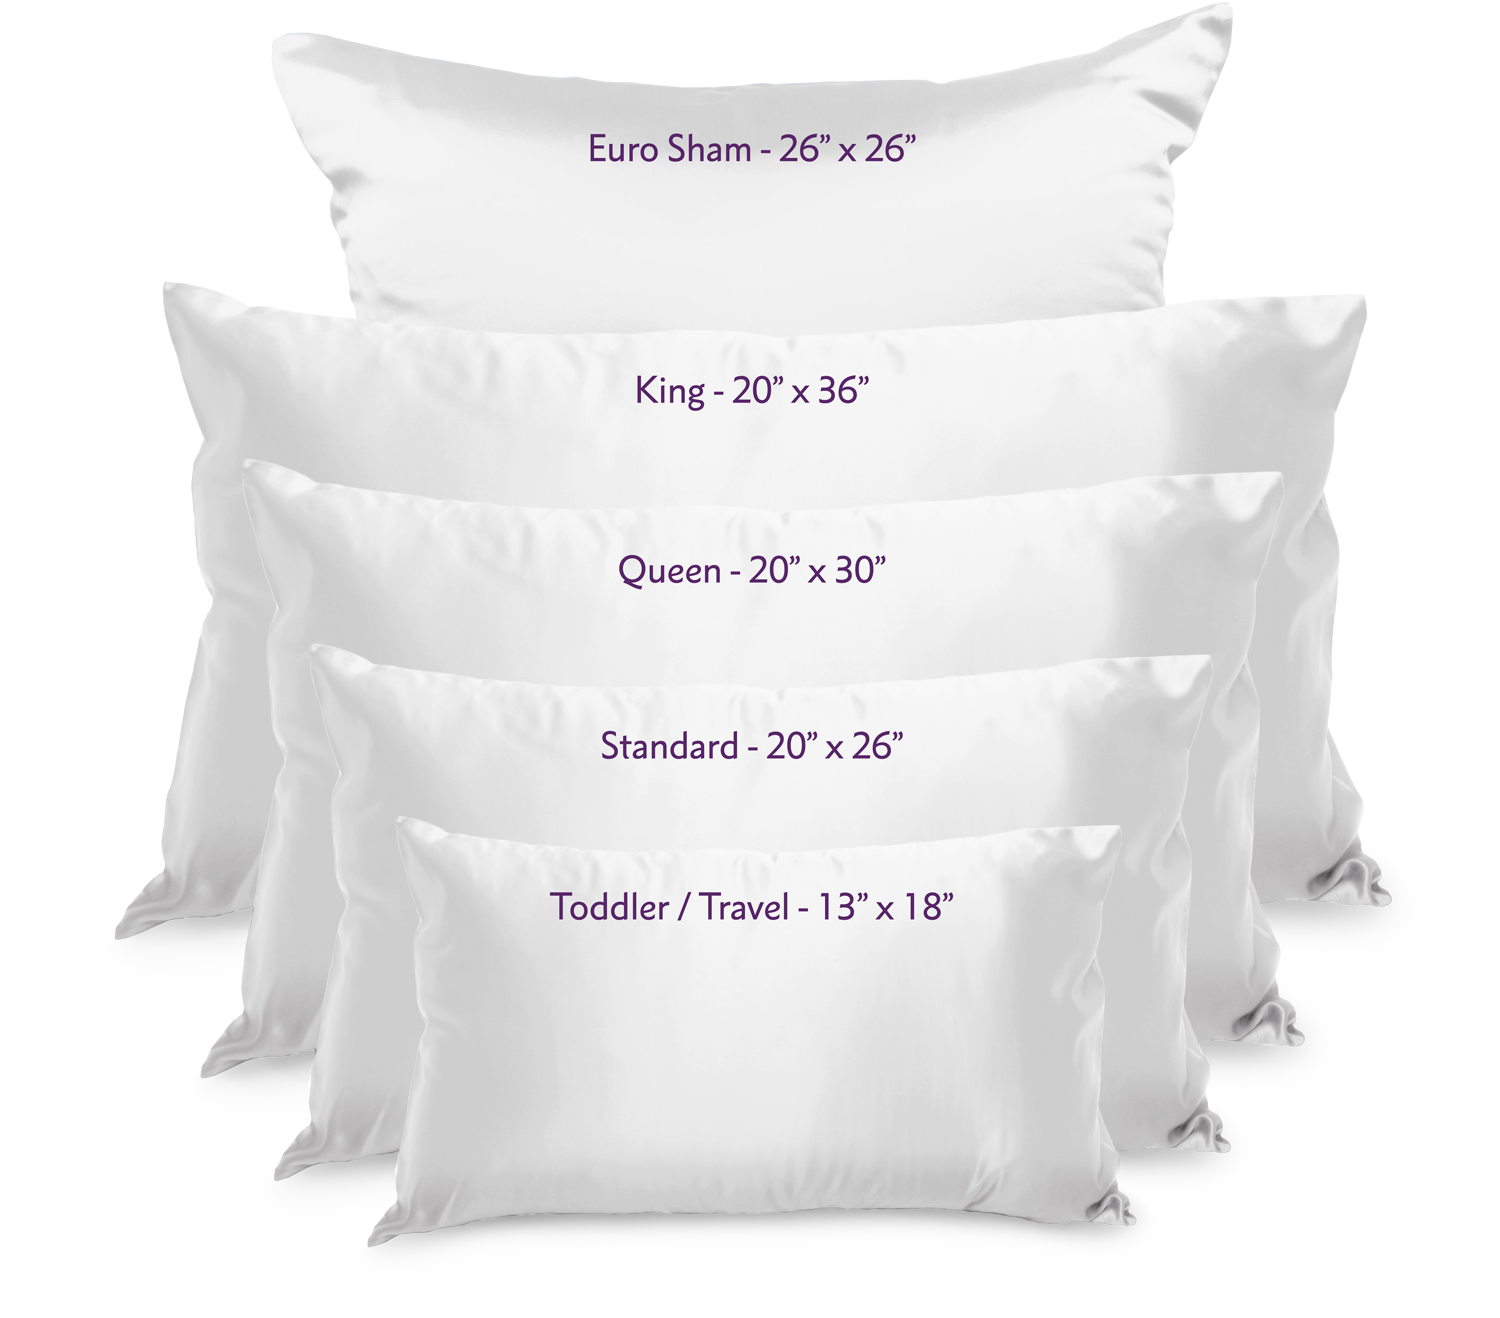 Pillowcase Size Guide - Toddler / Travel, Standard, Queen, King, and Euro Sham